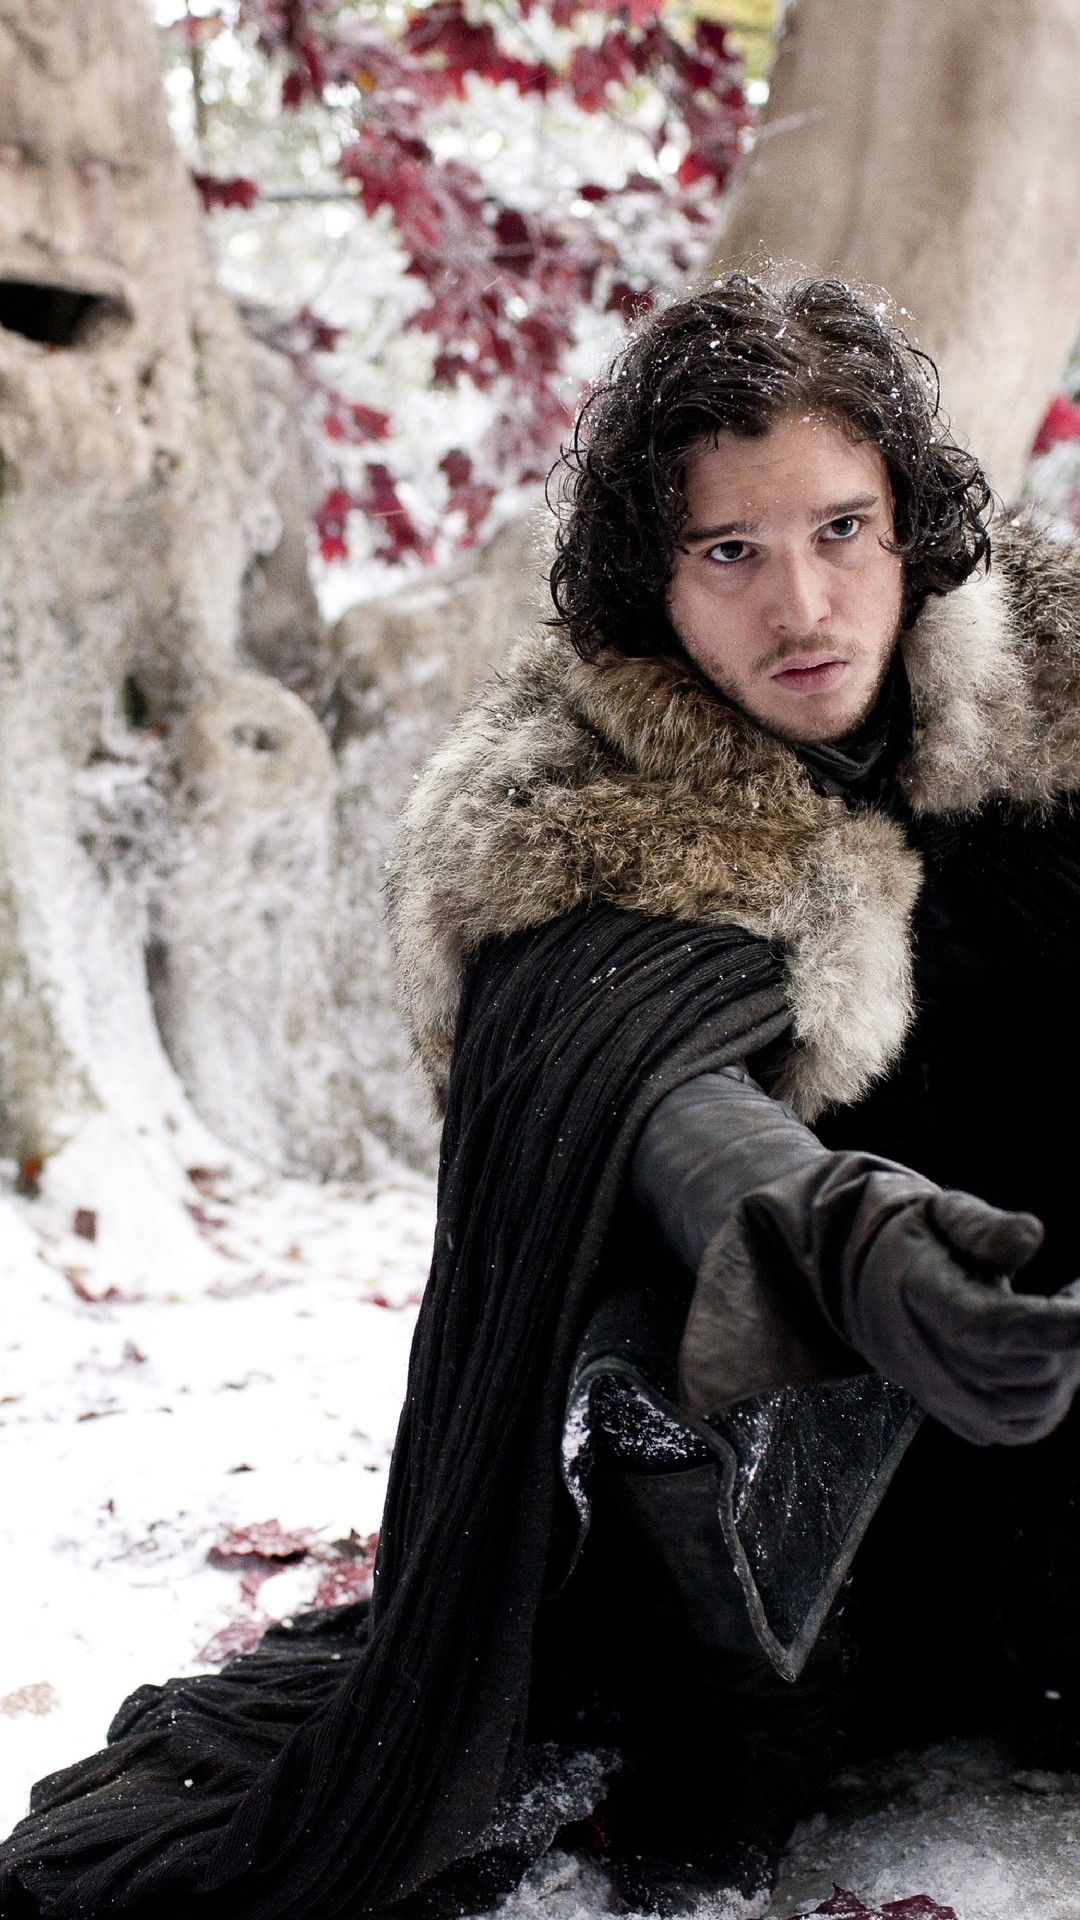 1080x1920 Jon Snow in Game Of Thrones 4K Ultra HD wallpaper | 4k-Wallpaper.Net